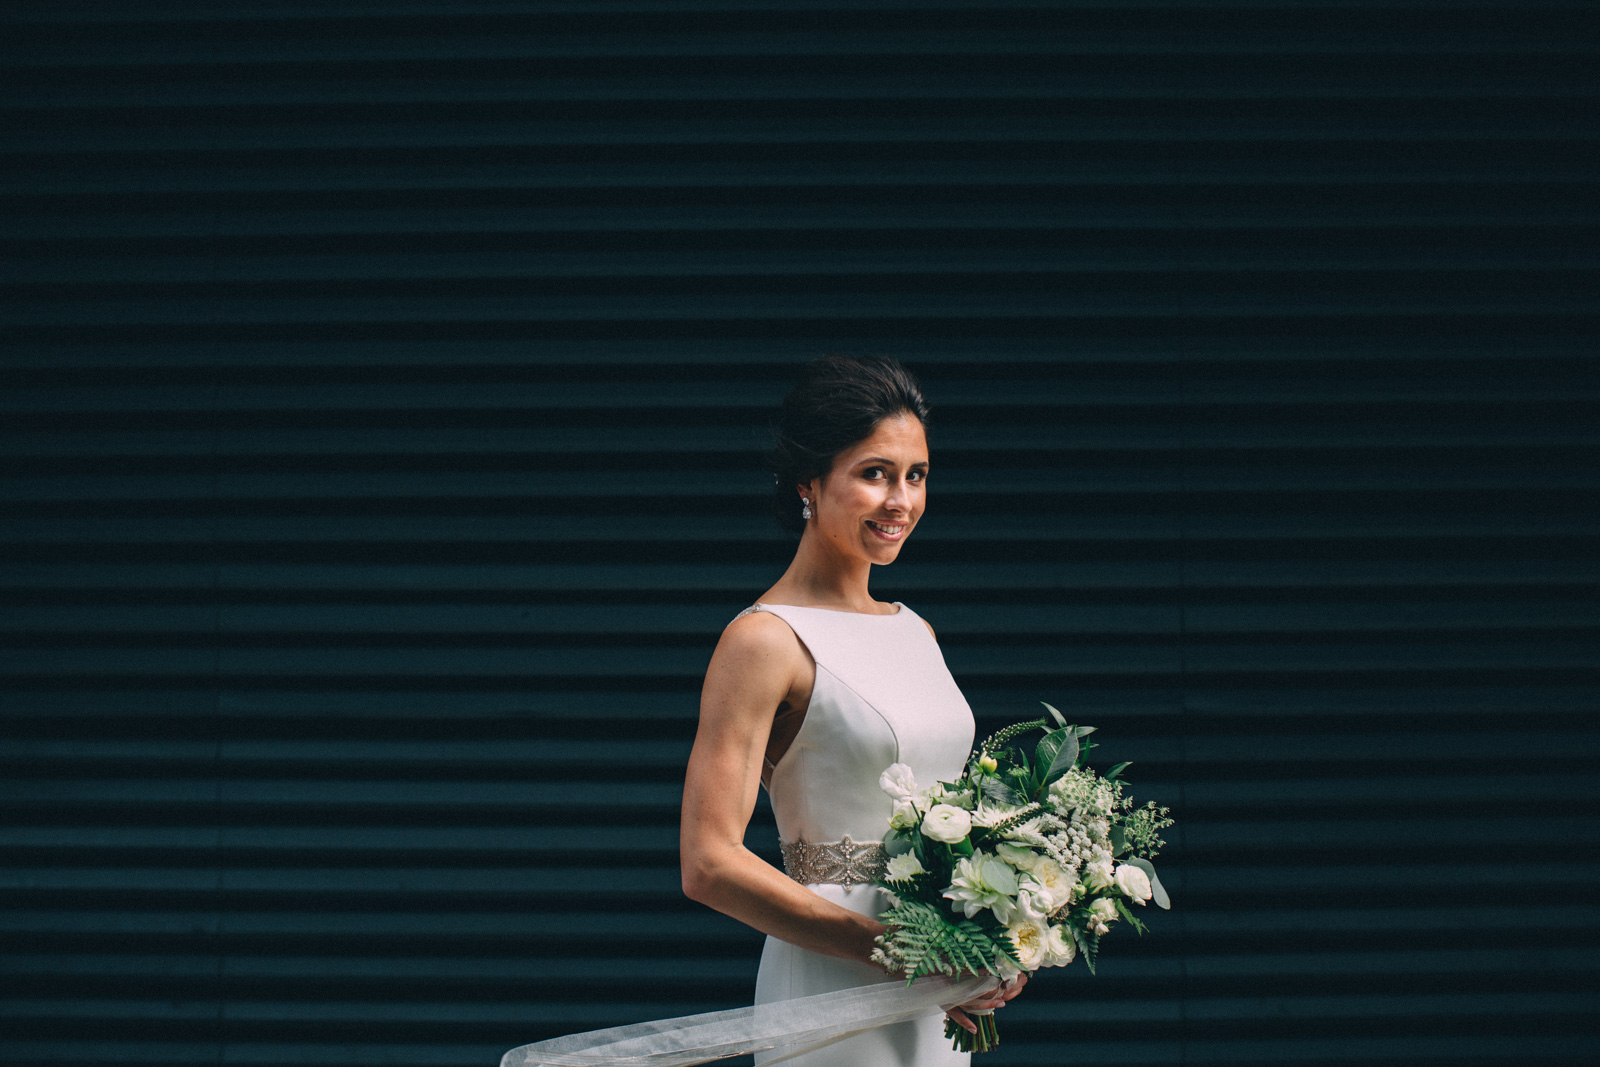 Malaparte-wedding-photography-Toronto-by-Sam-Wong-of-Artanis-Collective_36.jpg